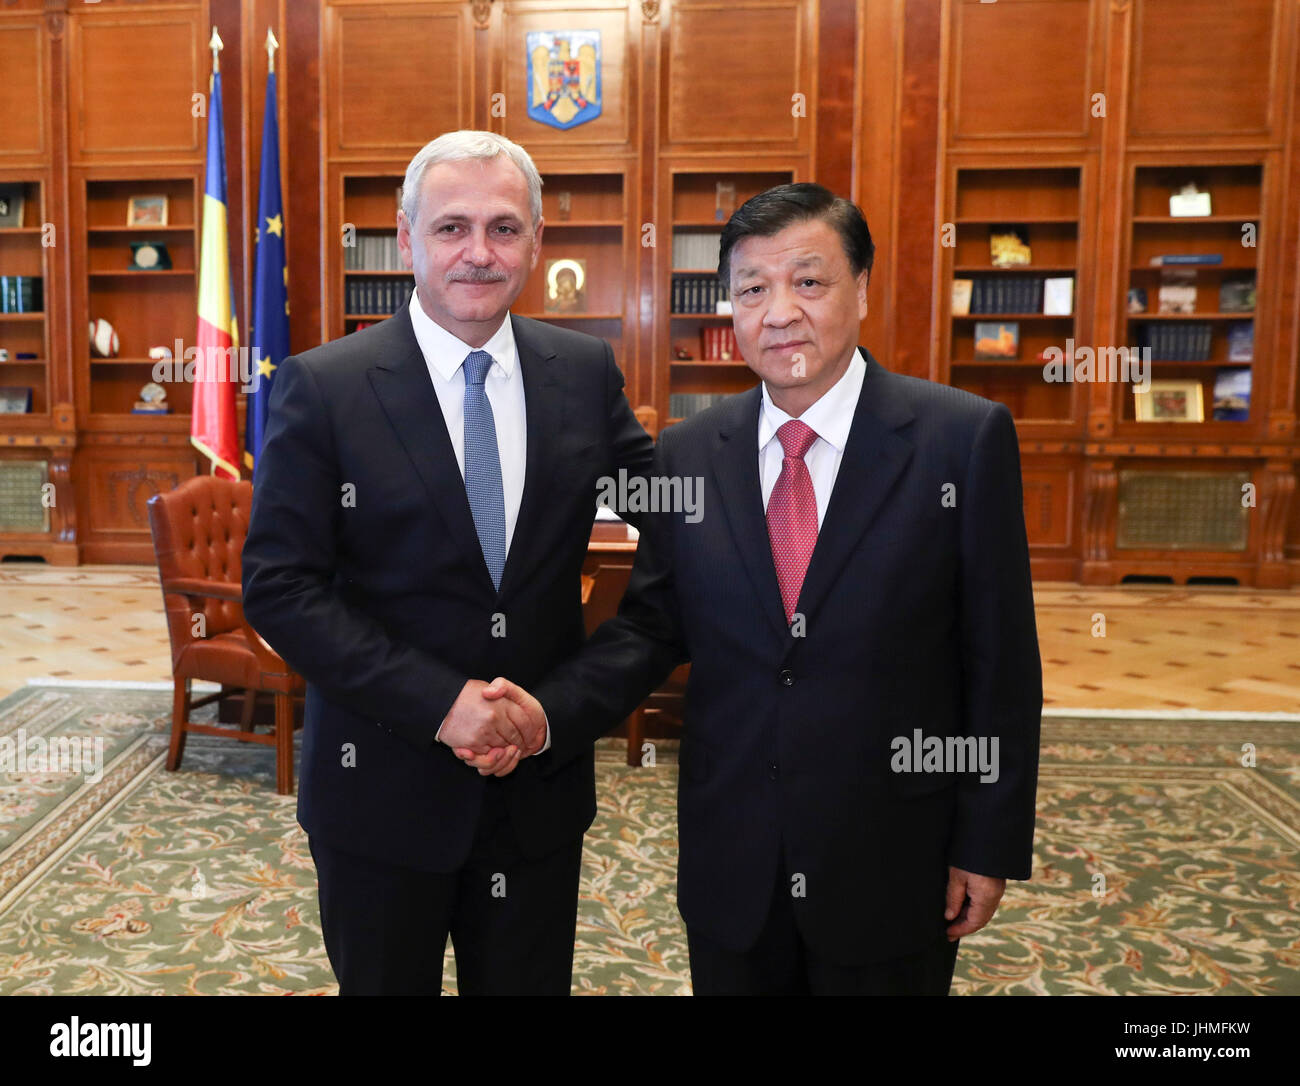 Bucharest, Romania. 14th July, 2017. Liu Yunshan (R), a member of the Standing Committee of the Political Bureau - Stock Image